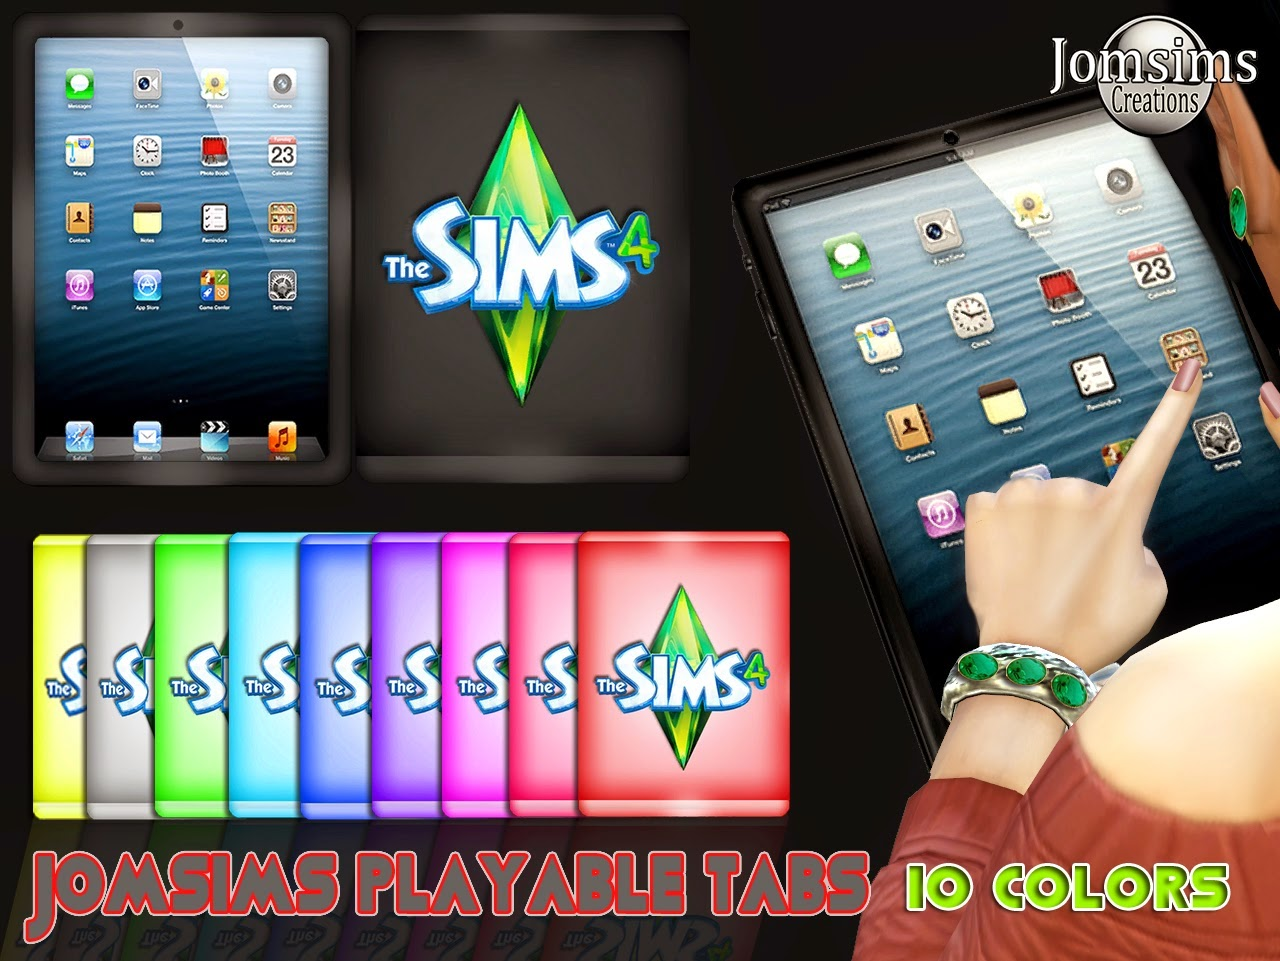 My Sims 4 Blog: Playable Sims 4 Tablets by JomSims